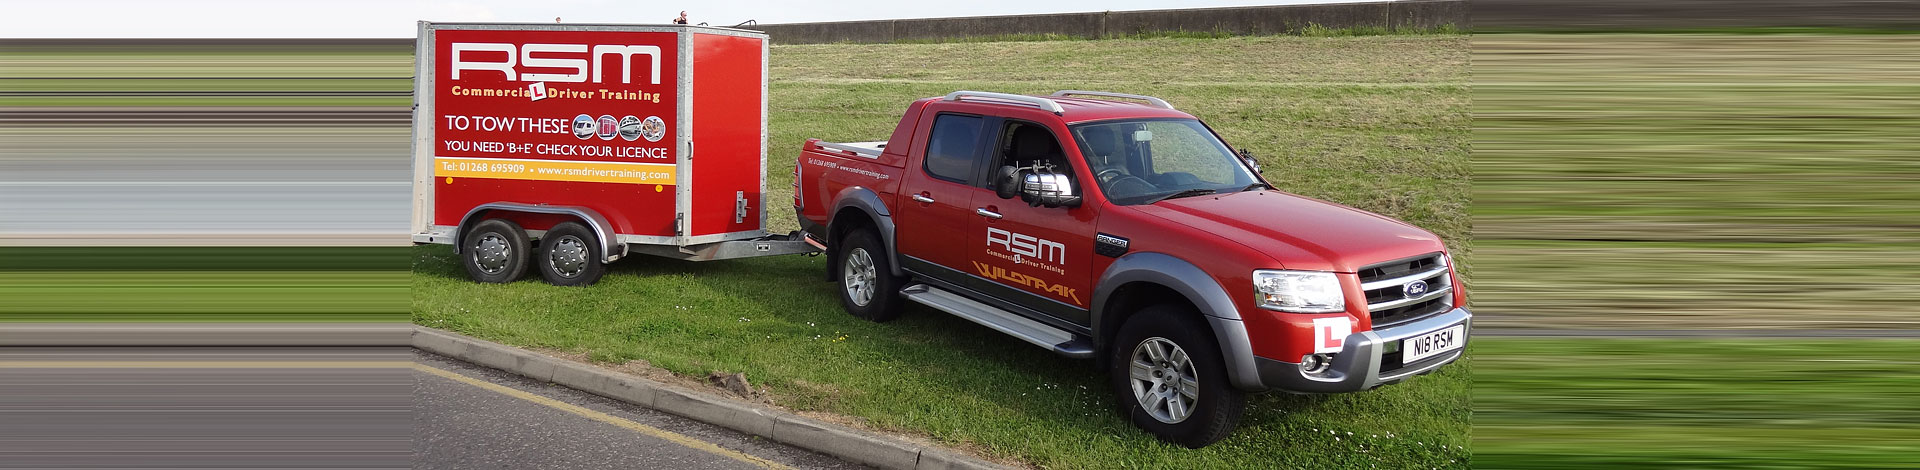 Trailer Towing Training in Essex